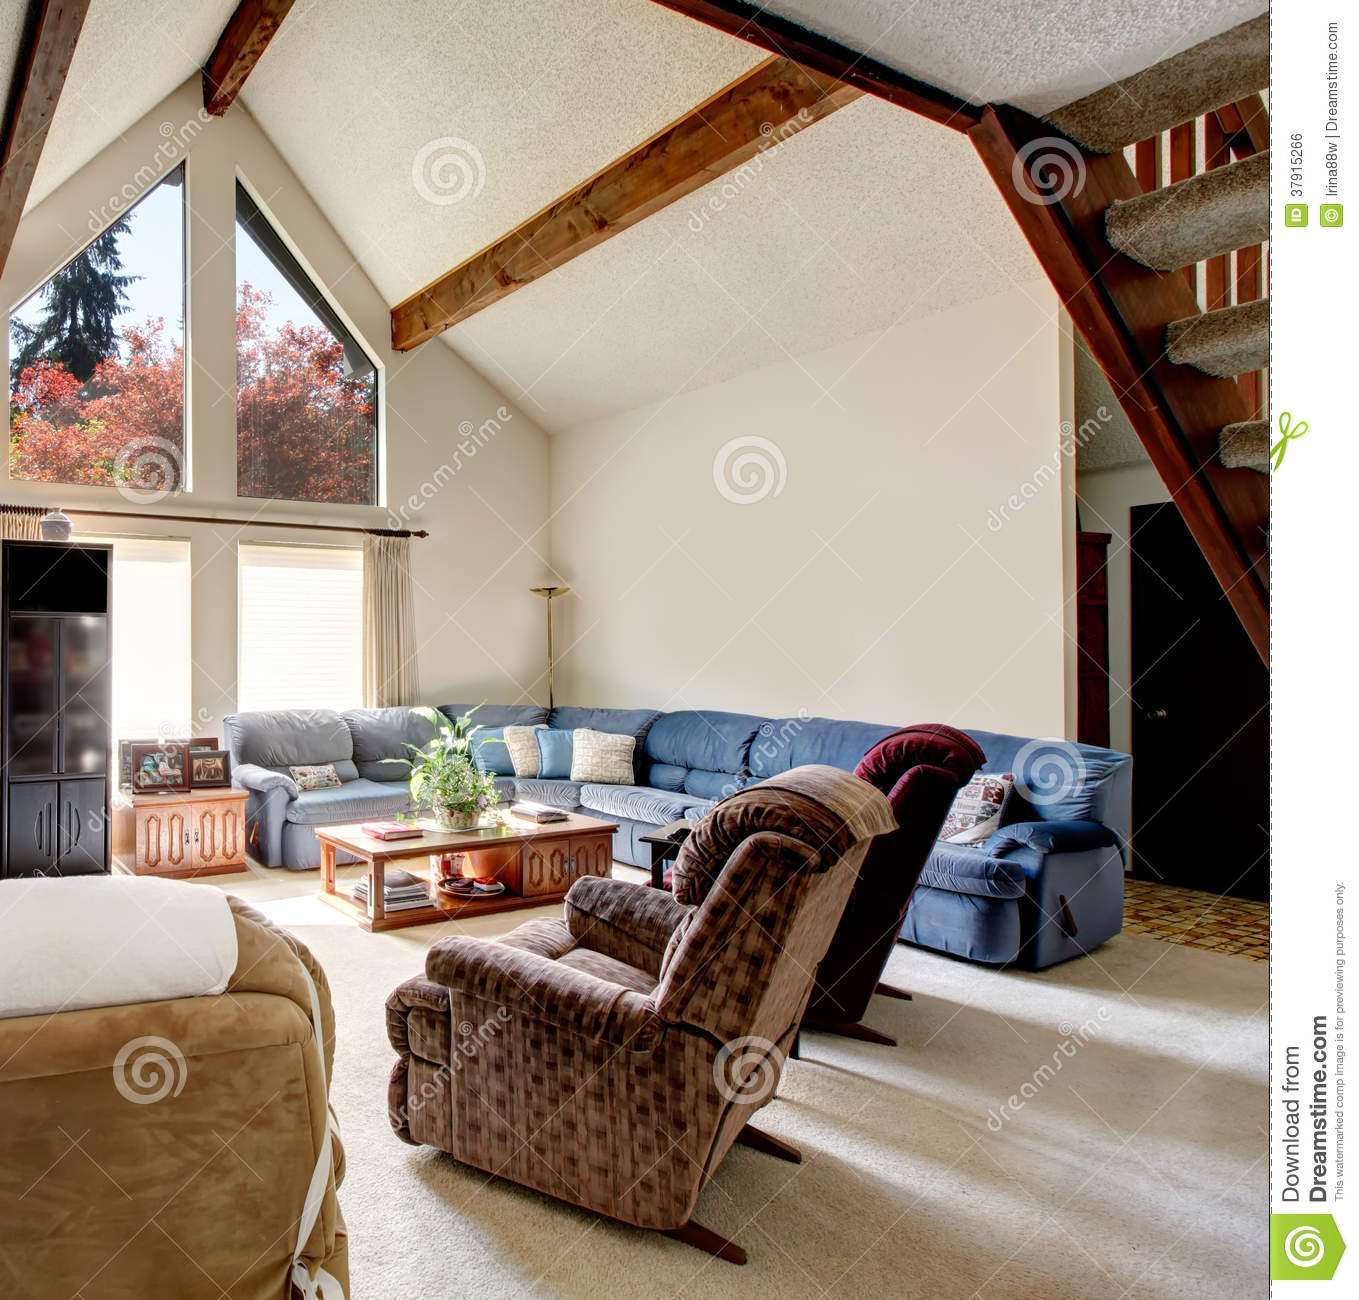 Wall Decor Vaulted Ceiling